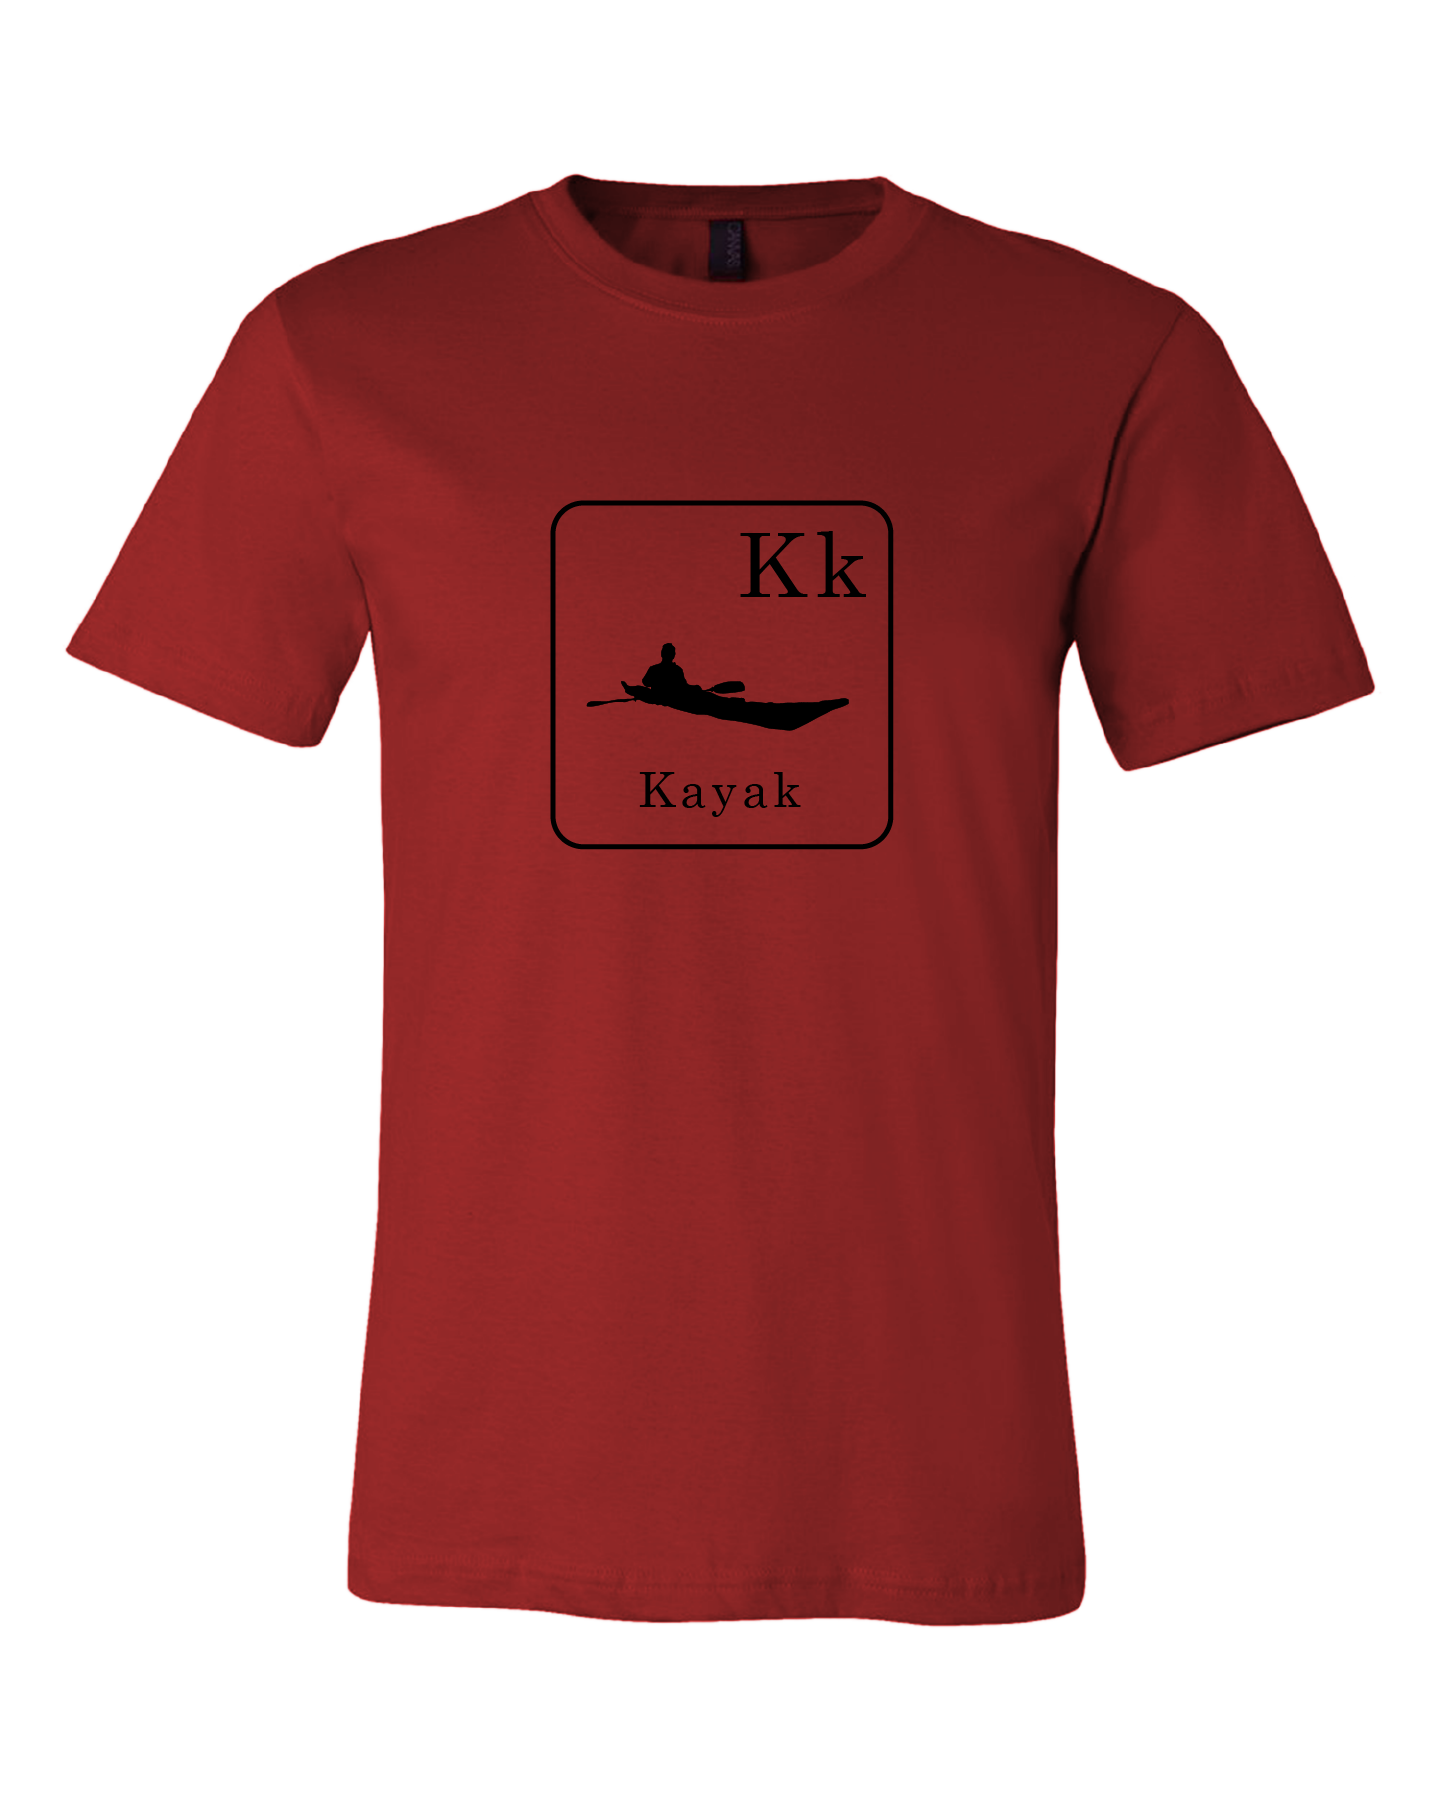 Kk is for Kayak